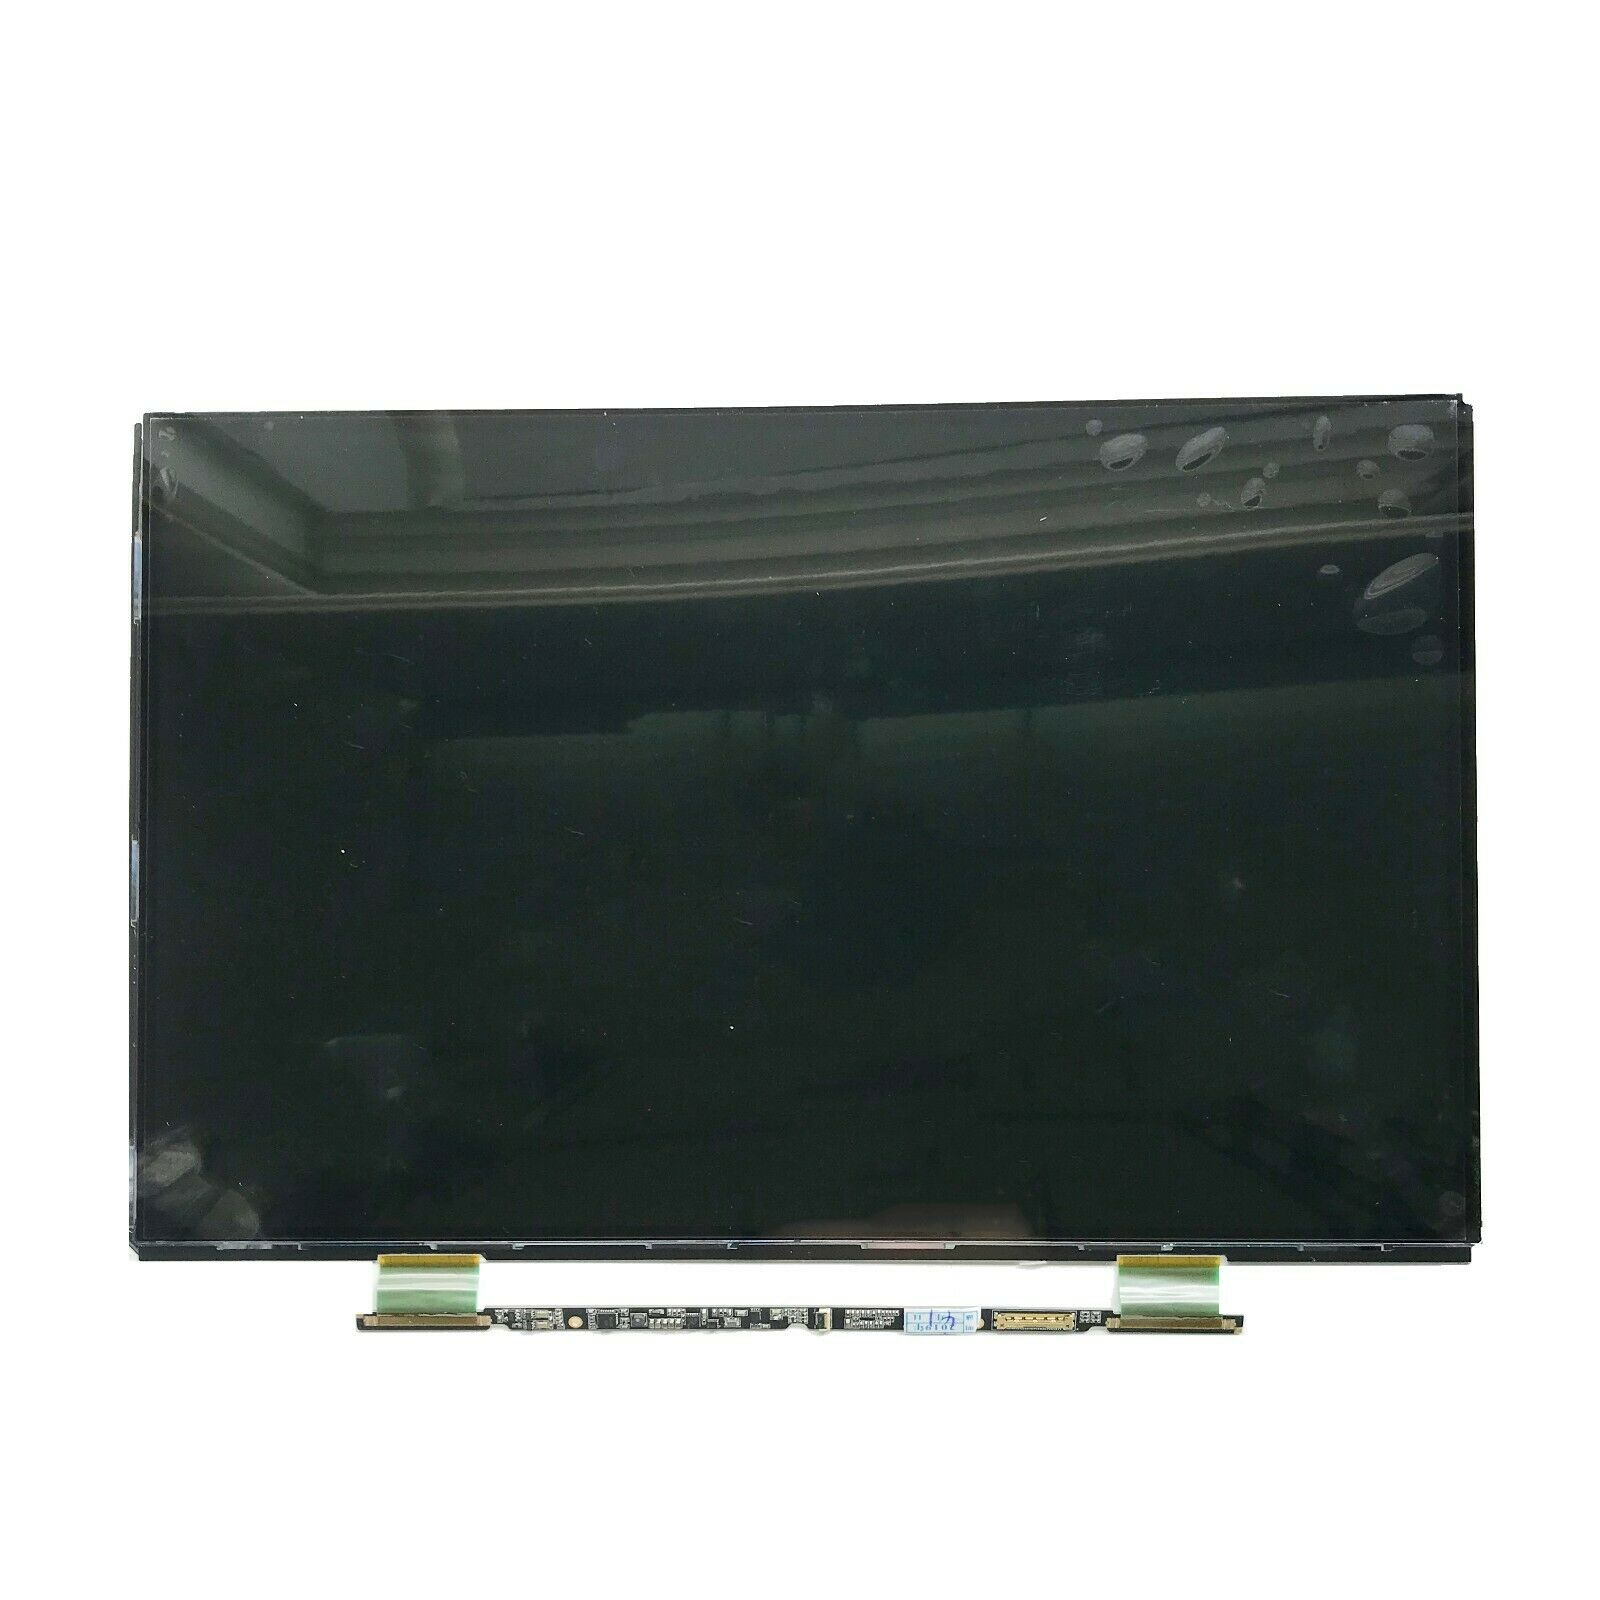 LPPLY 13.3 inch <font><b>LCD</b></font> Display Matrix 1440 x 900 For MacBook Air <font><b>A1369</b></font> A1466 <font><b>LCD</b></font> Screen Panel 2010 to 2017 Year image